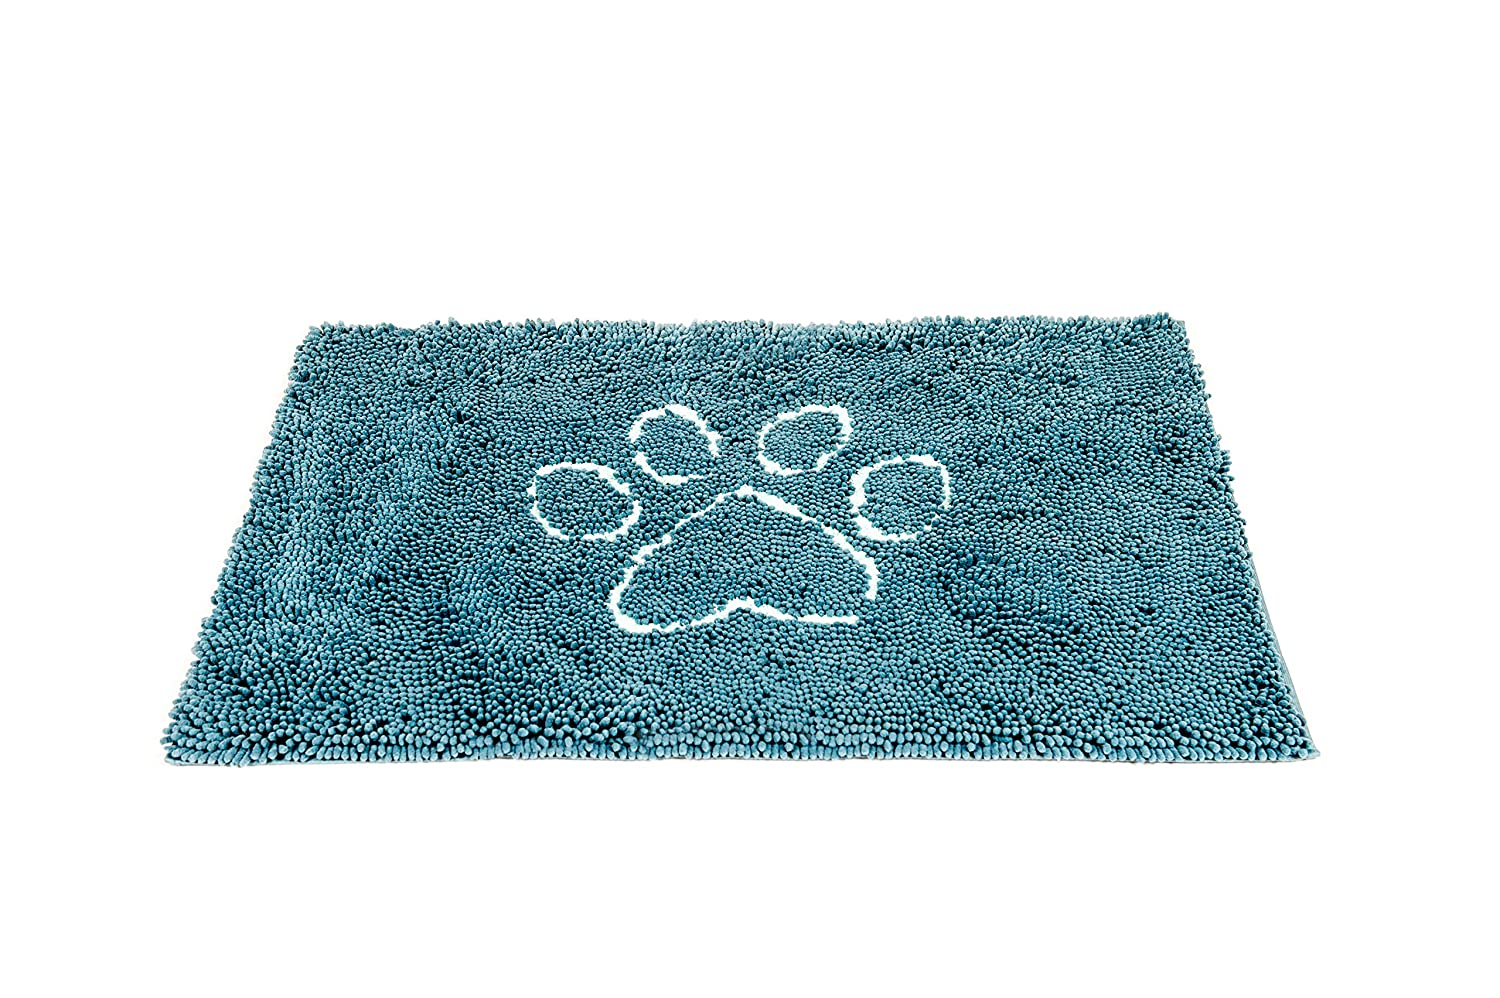 Pacific bluee Large Pacific bluee Large Dog Gone Smart Pet Products Dirty Dog Doormat, Large, Pacific bluee